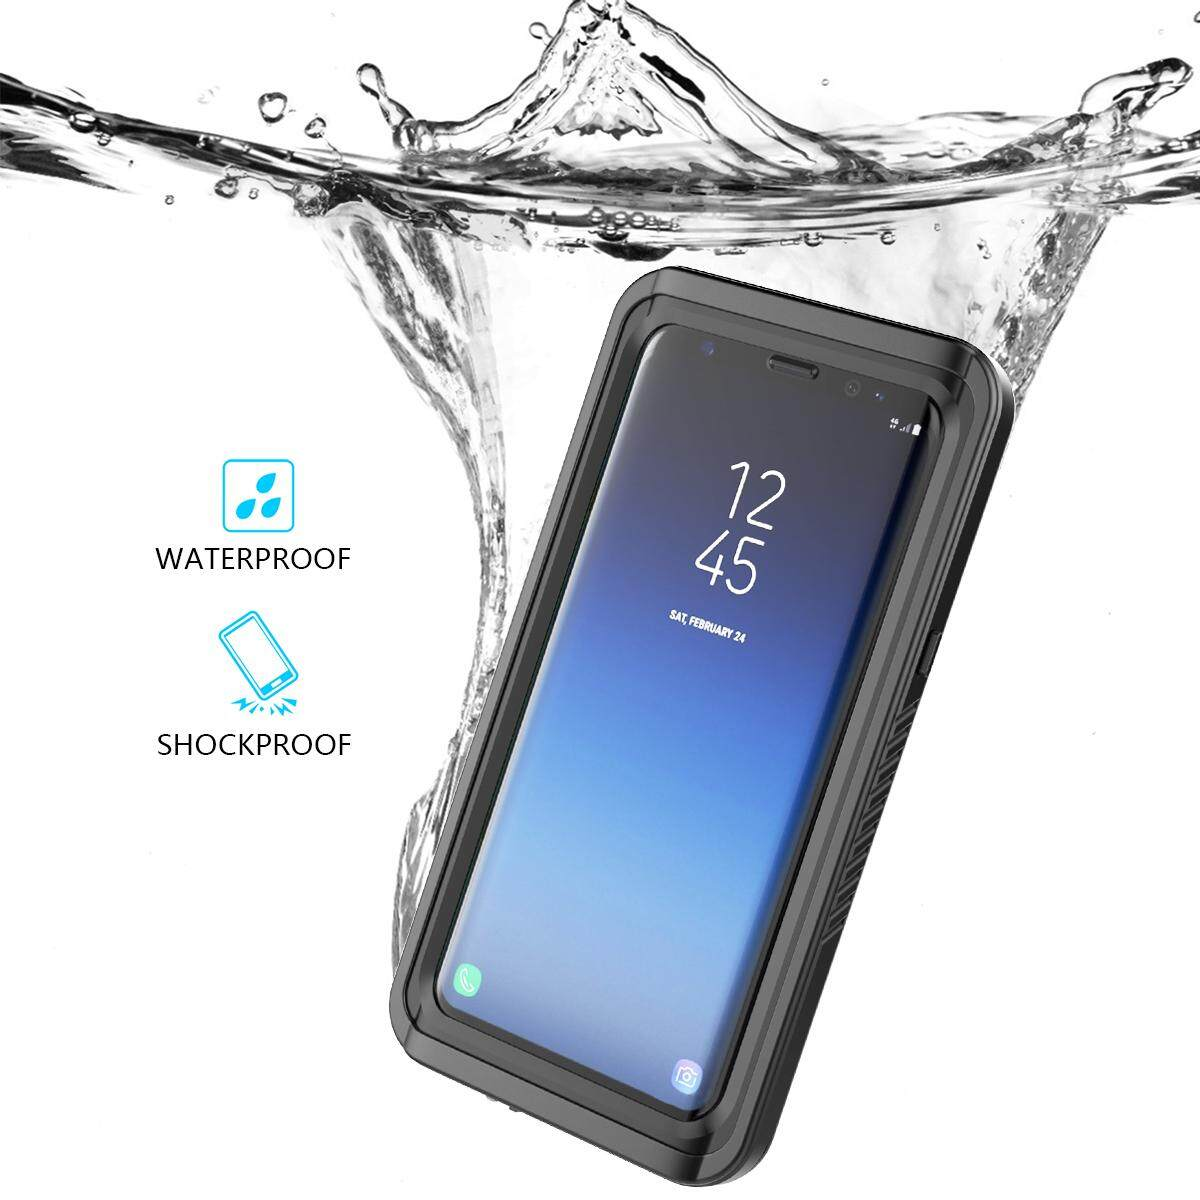 Gambar Produk Rinci Moonmini Case Cover for Samsung Galaxy S9 Plus Ultra-slim 360 Degree Protection Case Waterproof Dustproof Shell with Buoyancy Lanyard ...